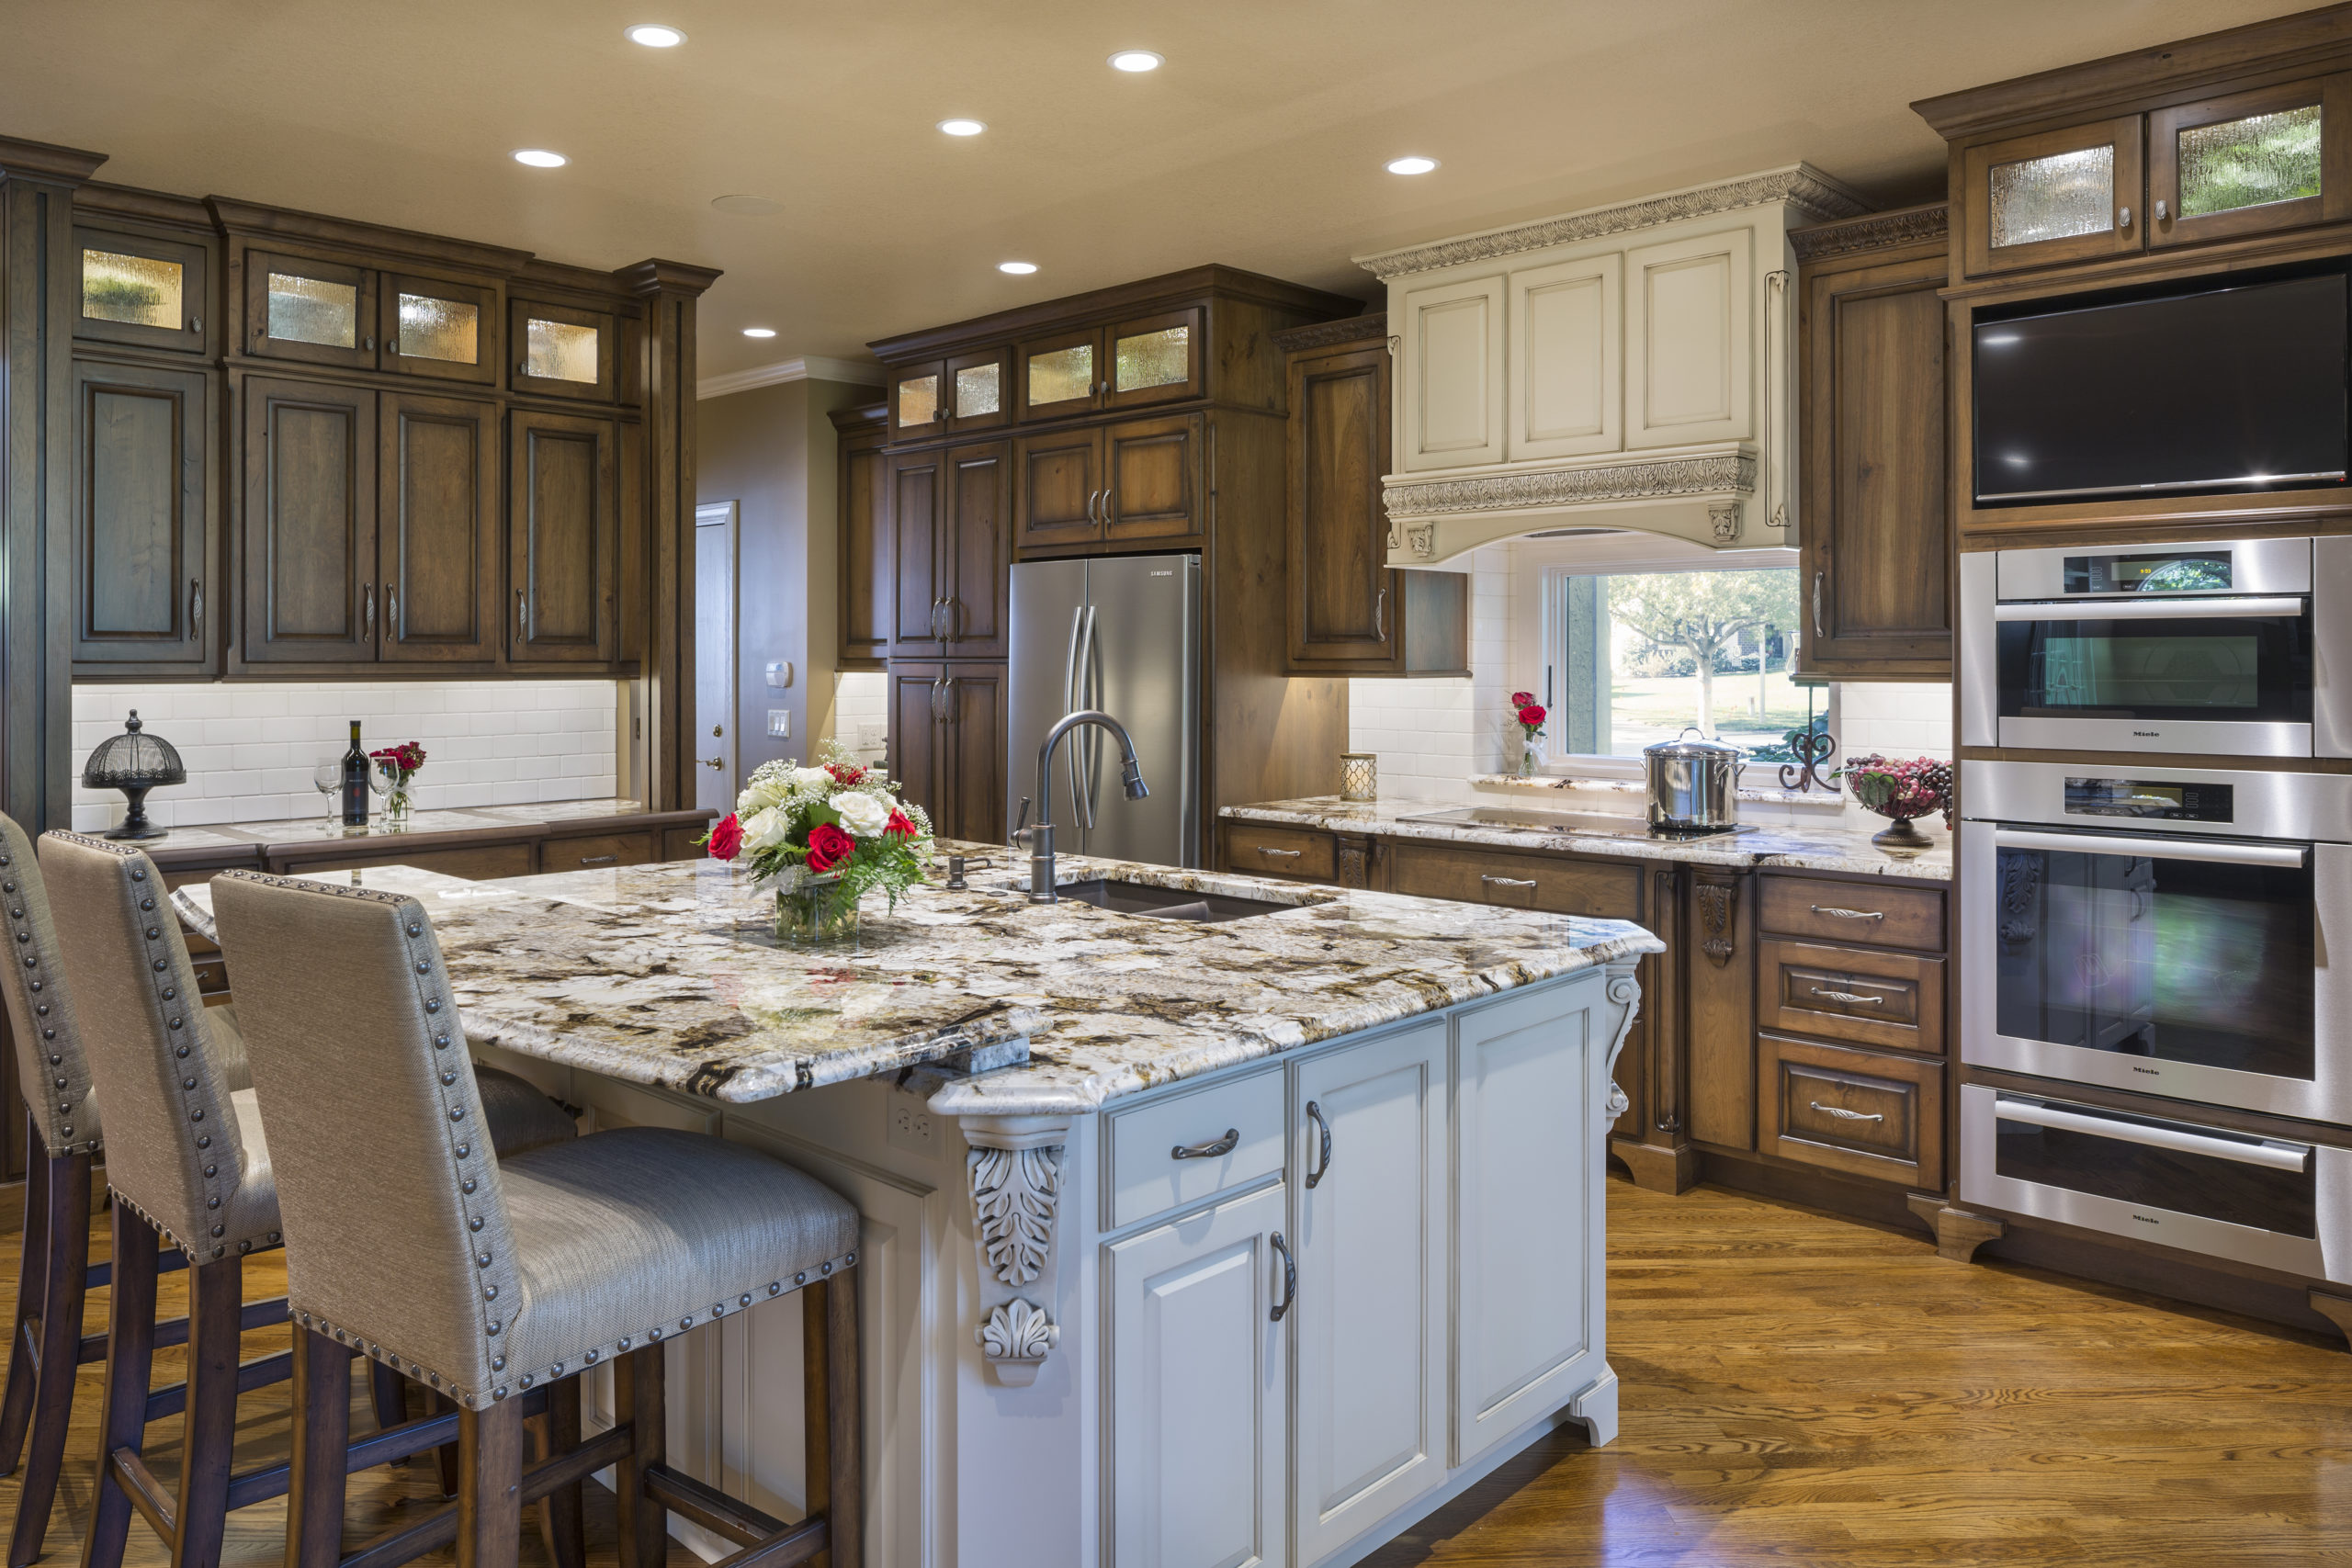 Guest Blog: How To Build Your Best Kitchen